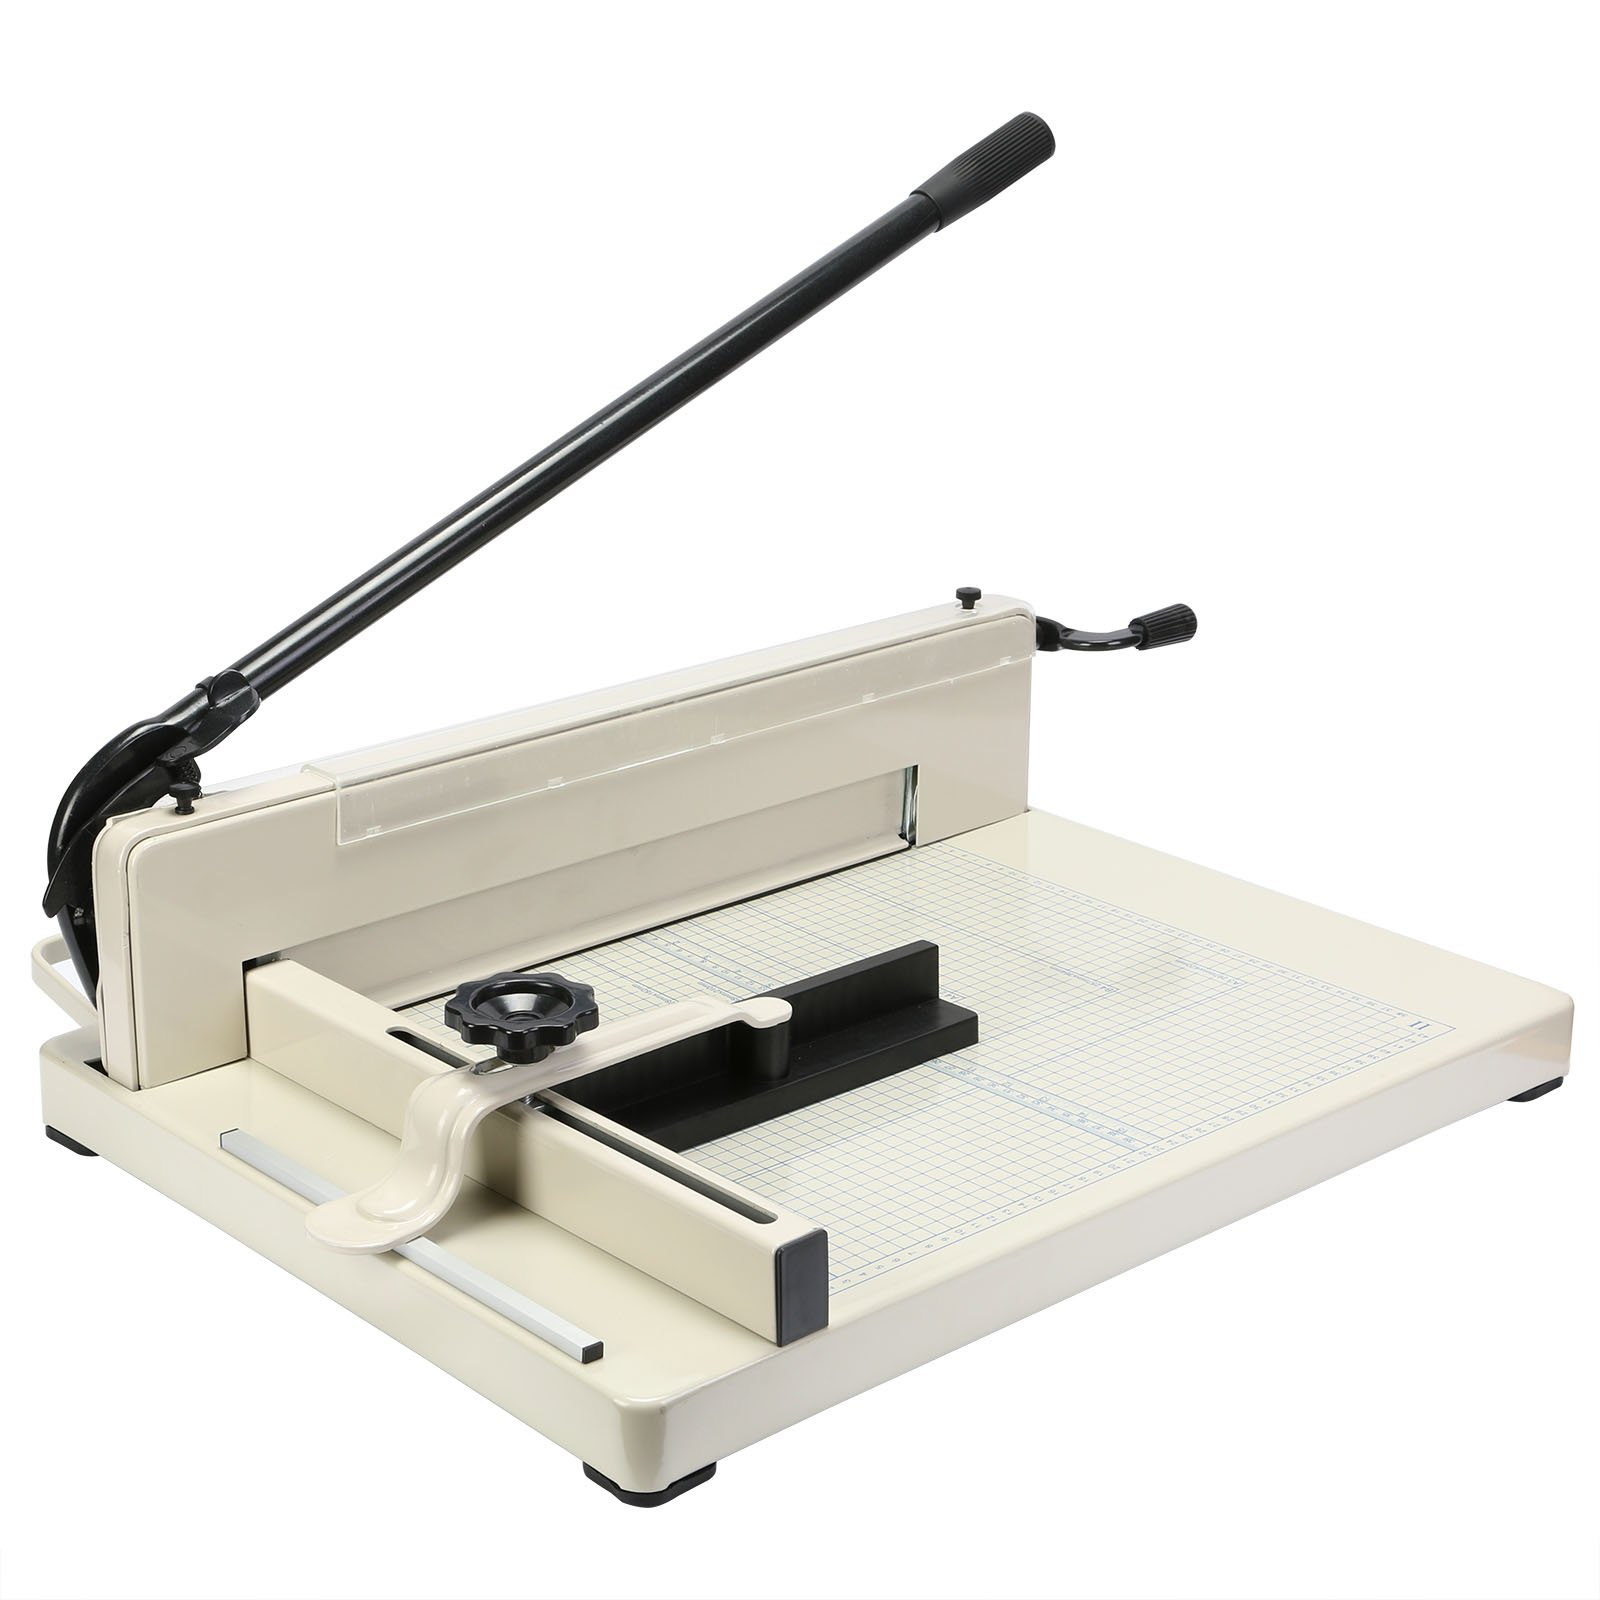 SMTHouse A3 Paper Cutter Paper Trimmer Paper Cutter Guillotine 17 Inch Capacity 80g 400 Sheets for Commercial Photocopy Printing Shop (A3 17 Inch) by SMTHouse